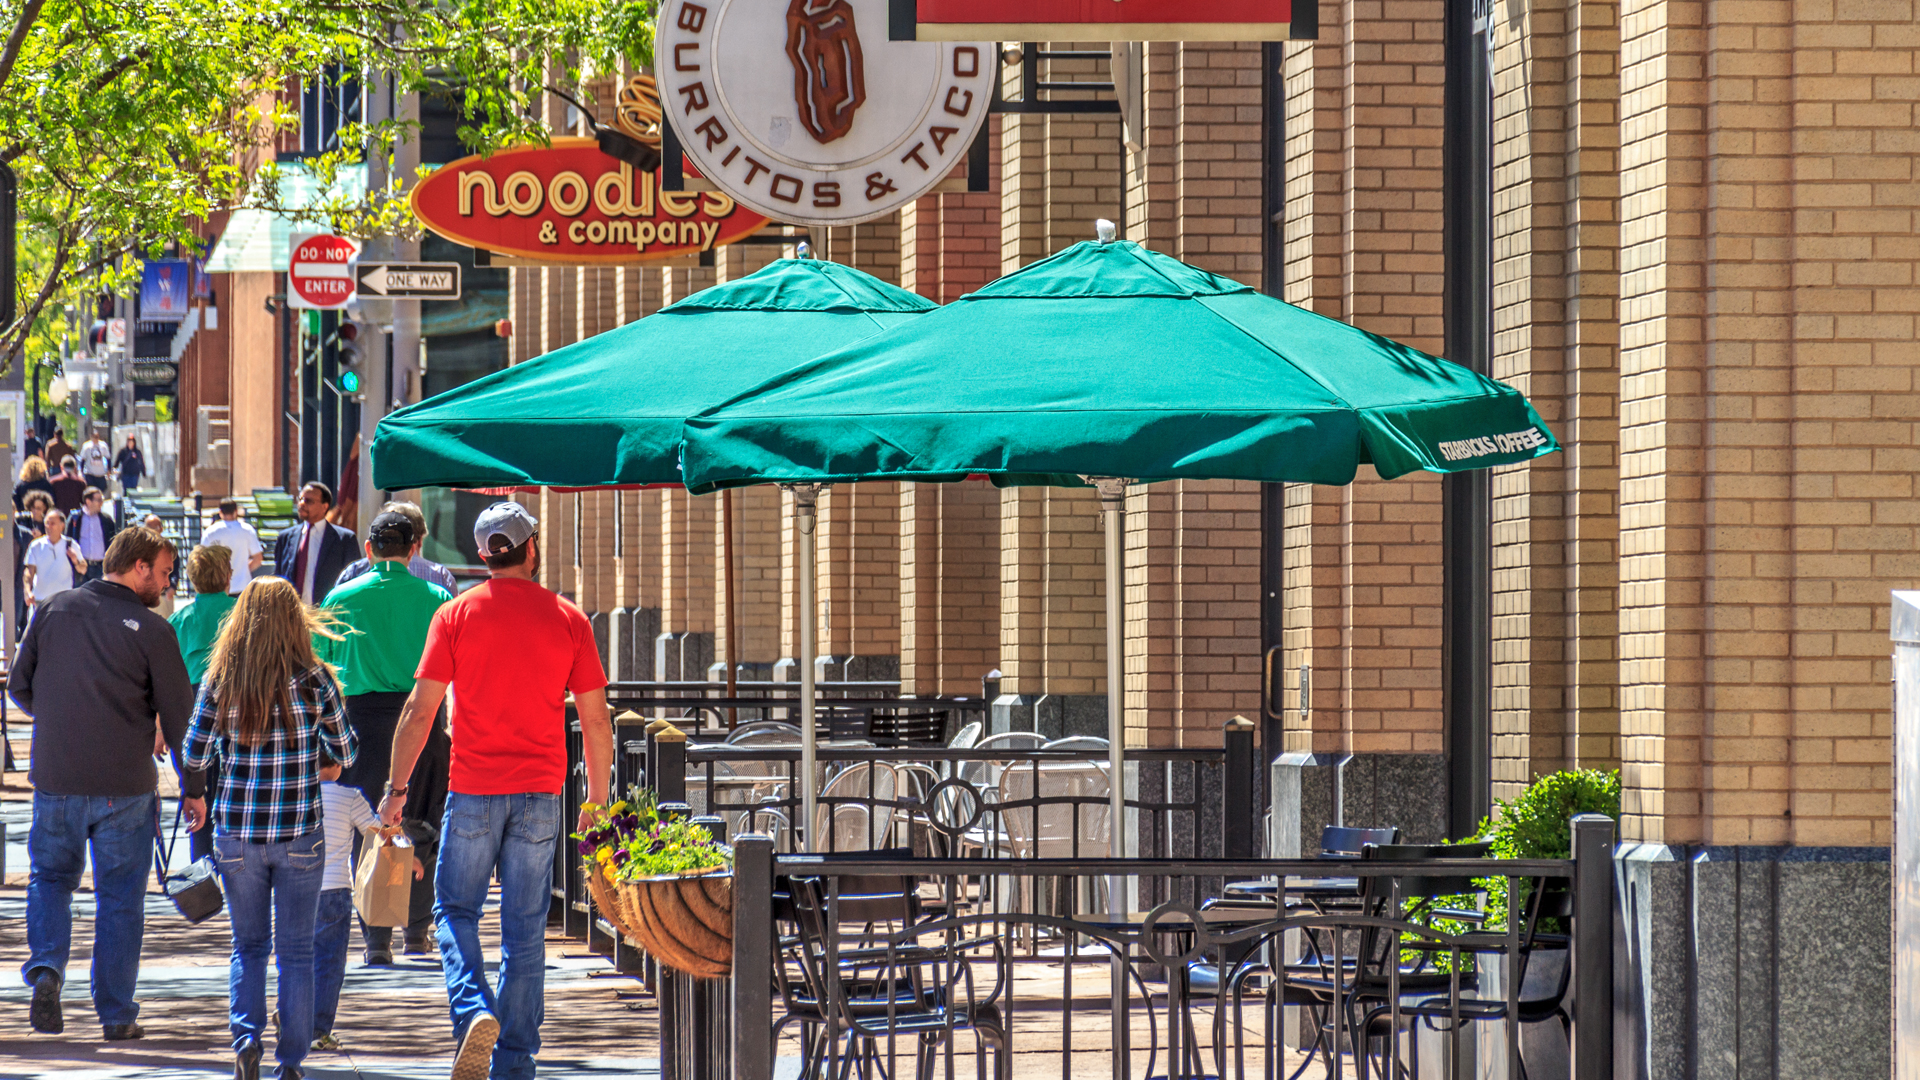 <p>In the heart of pedestrian friendly Lodo, 16 Market Square's 25,000 square feet of ground-level retail space reconnected the rising Lodo neighborhood to the traditional Central Business District along 16<sup>th</sup> street.</p>